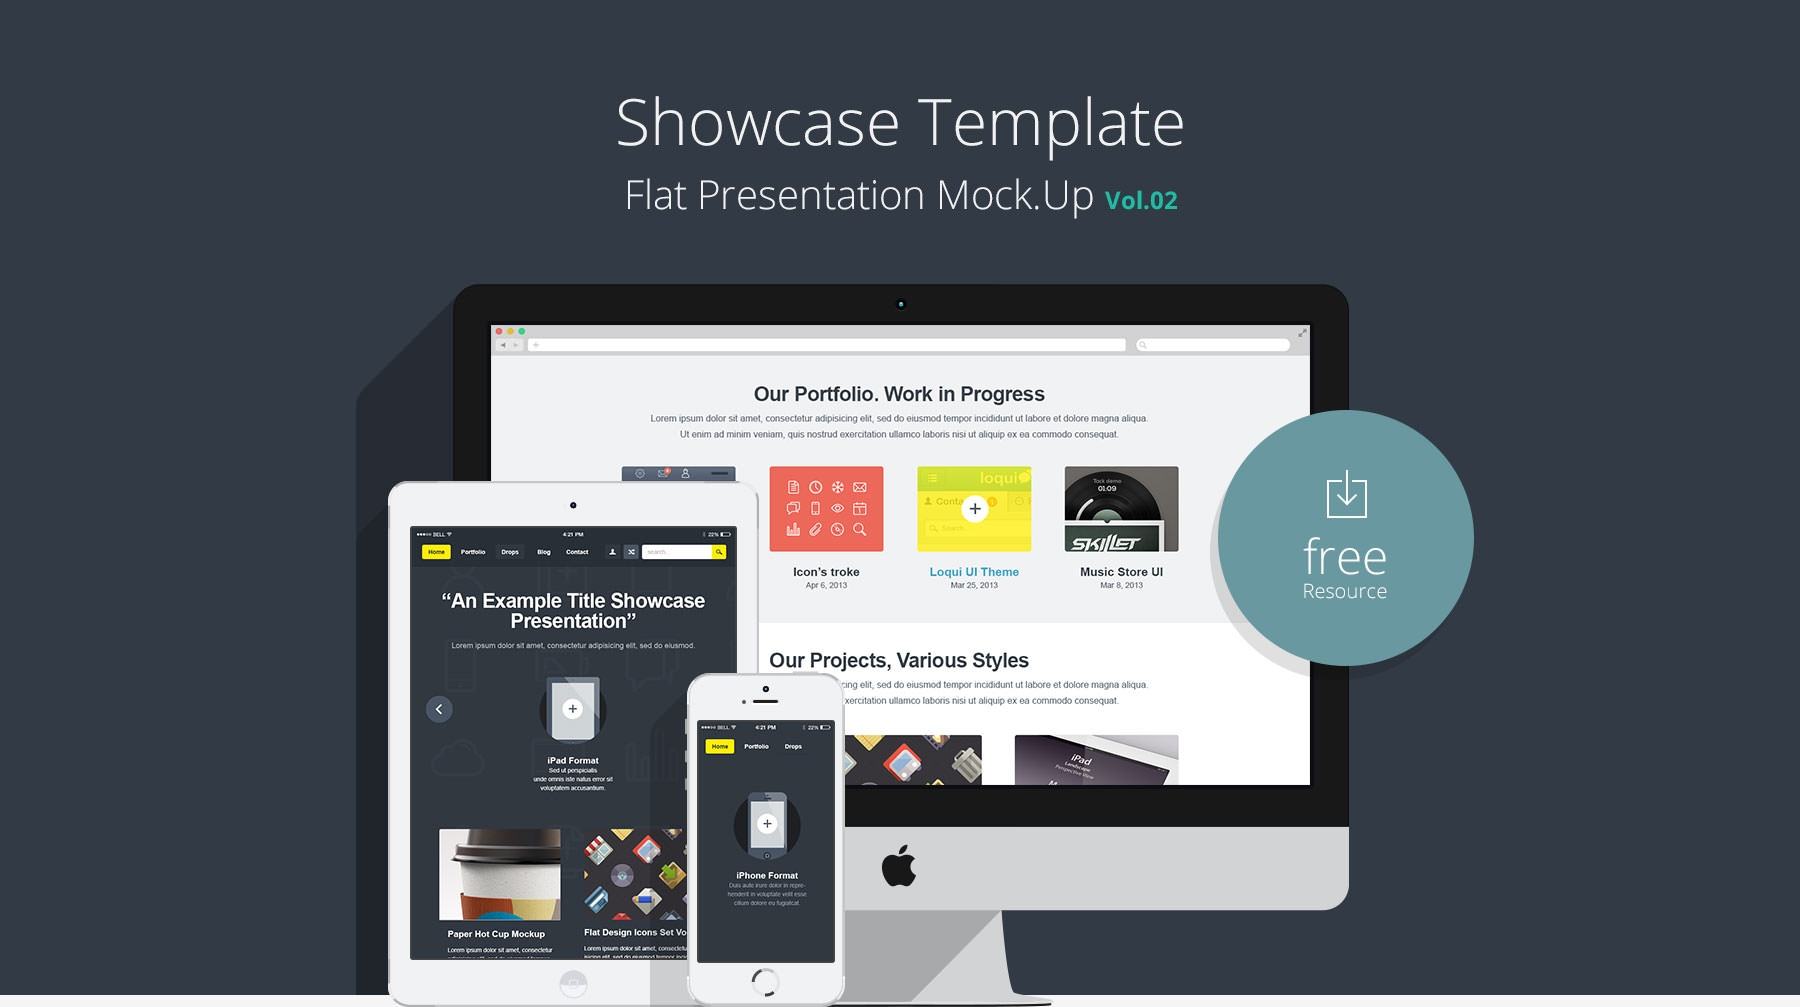 Showcase-Template-Flat-Presentation-Vol-2